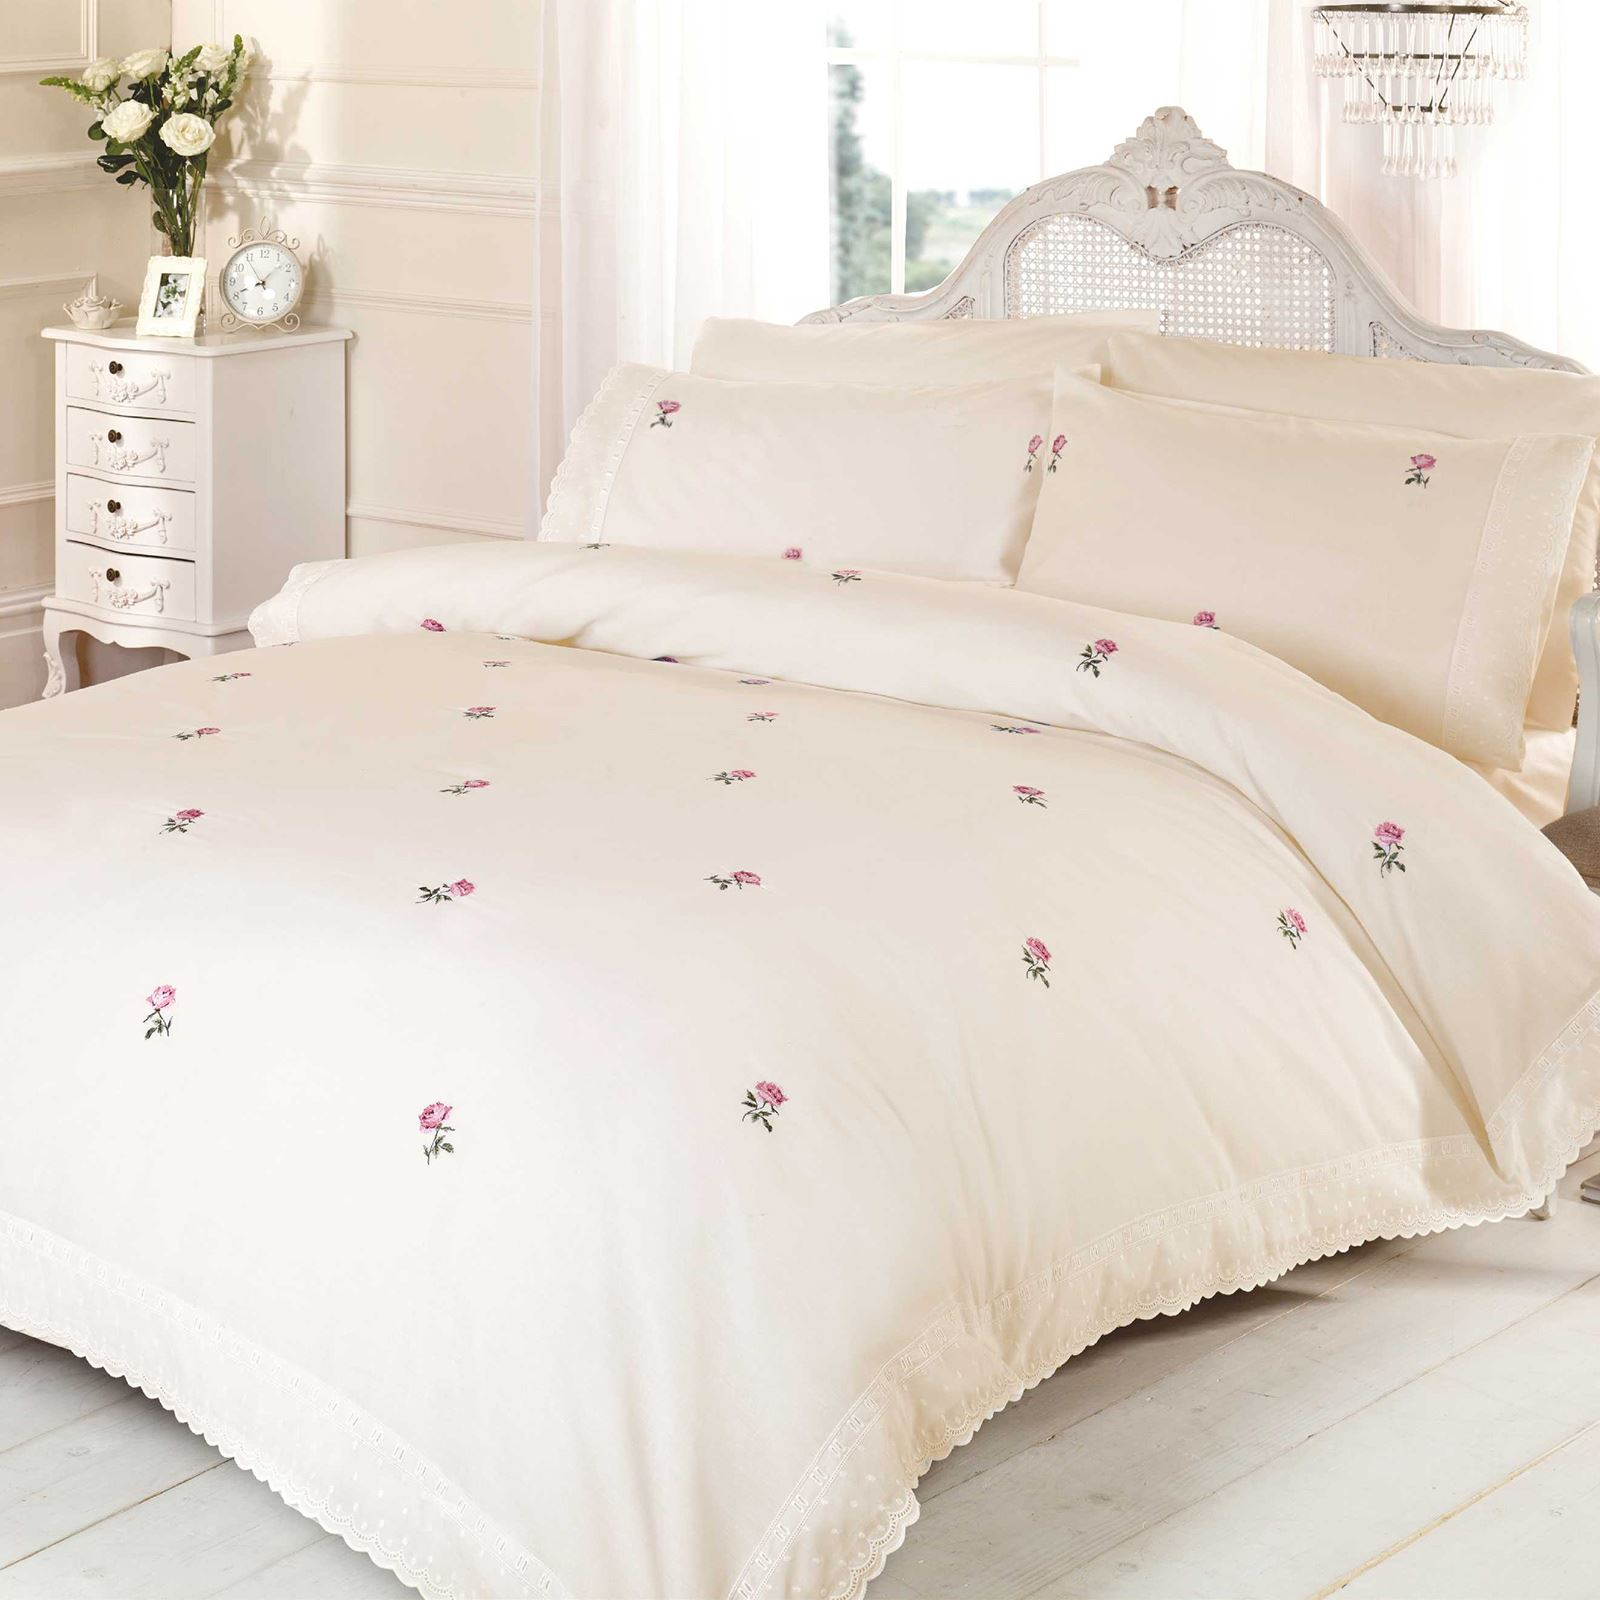 Alicia Floral Cream Pink Single Duvet Cover Set